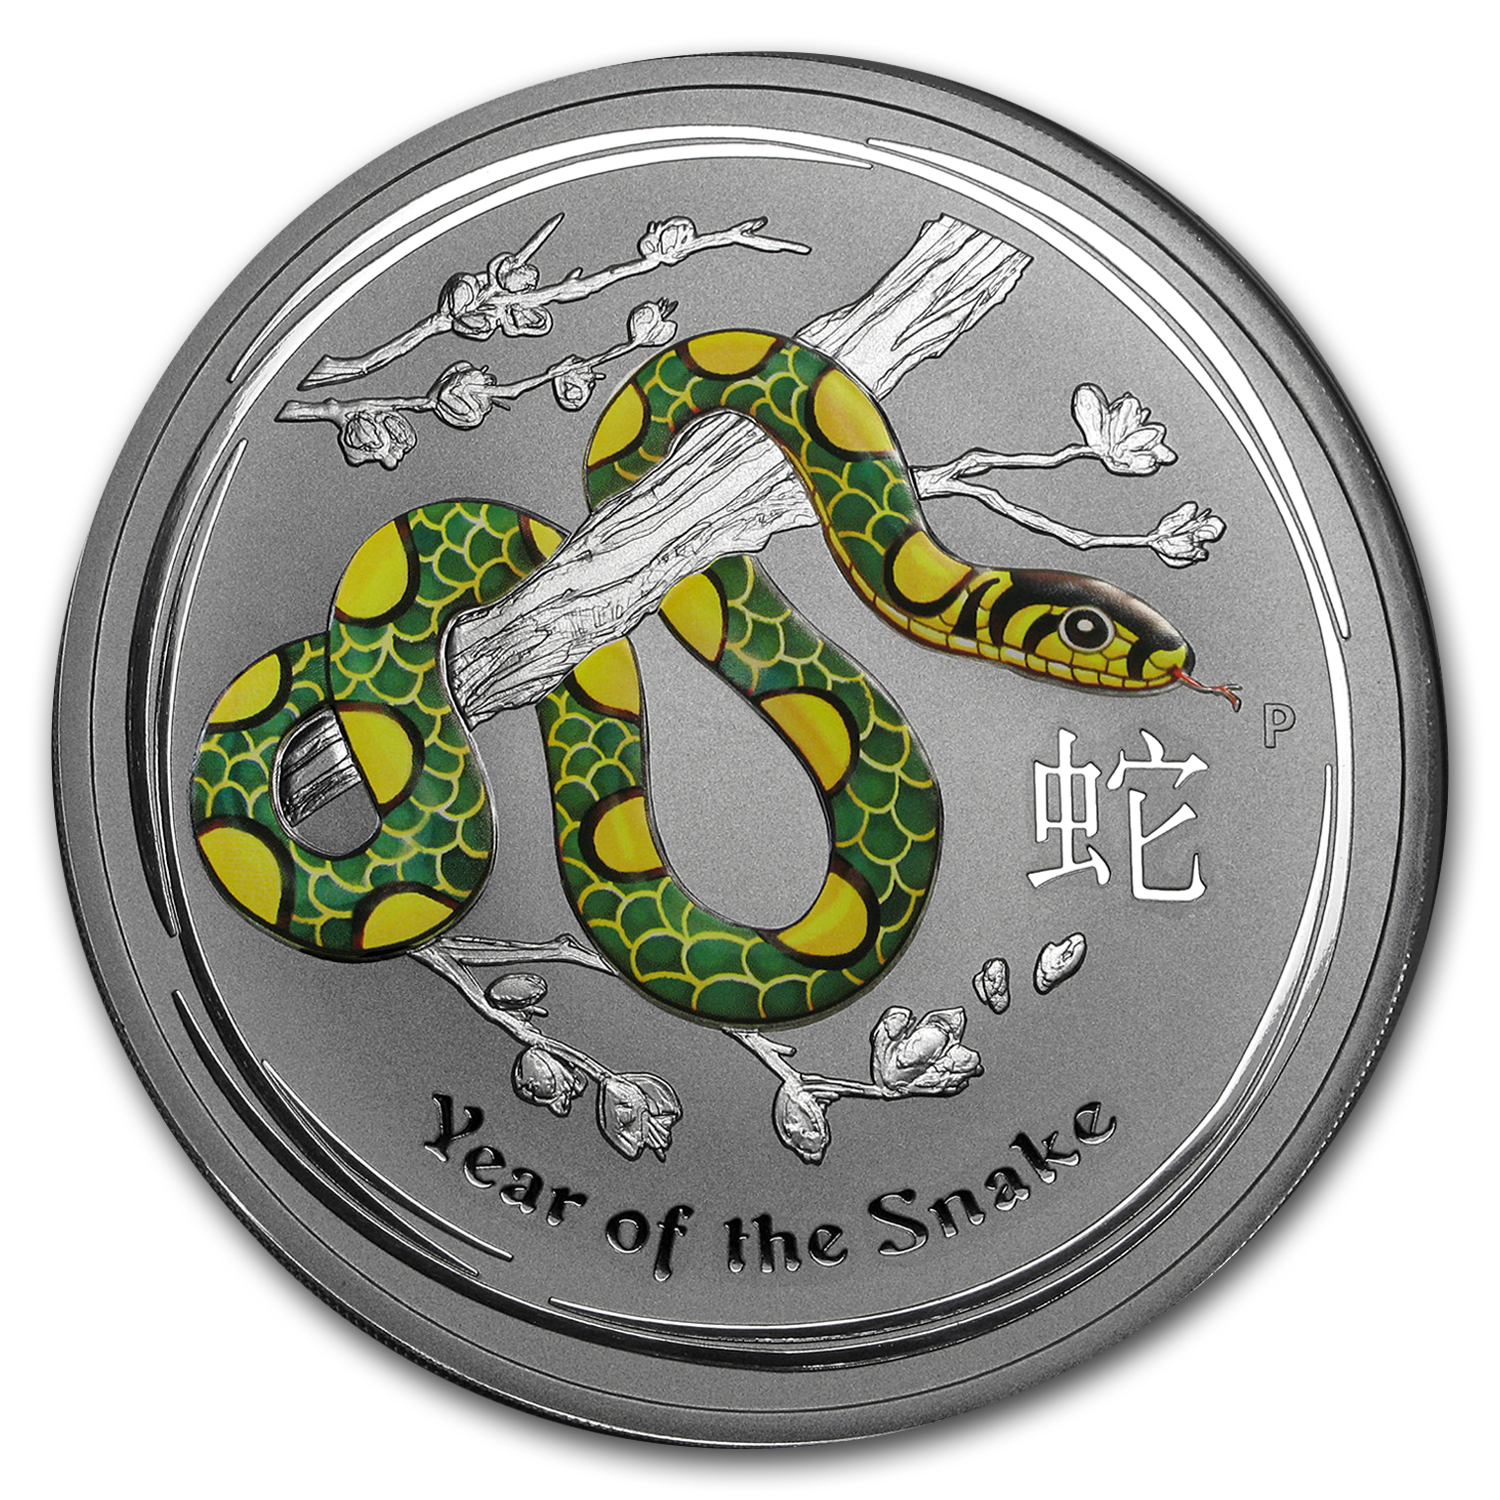 2013 10 oz Silver Australian Year of the Snake Colorized Coin